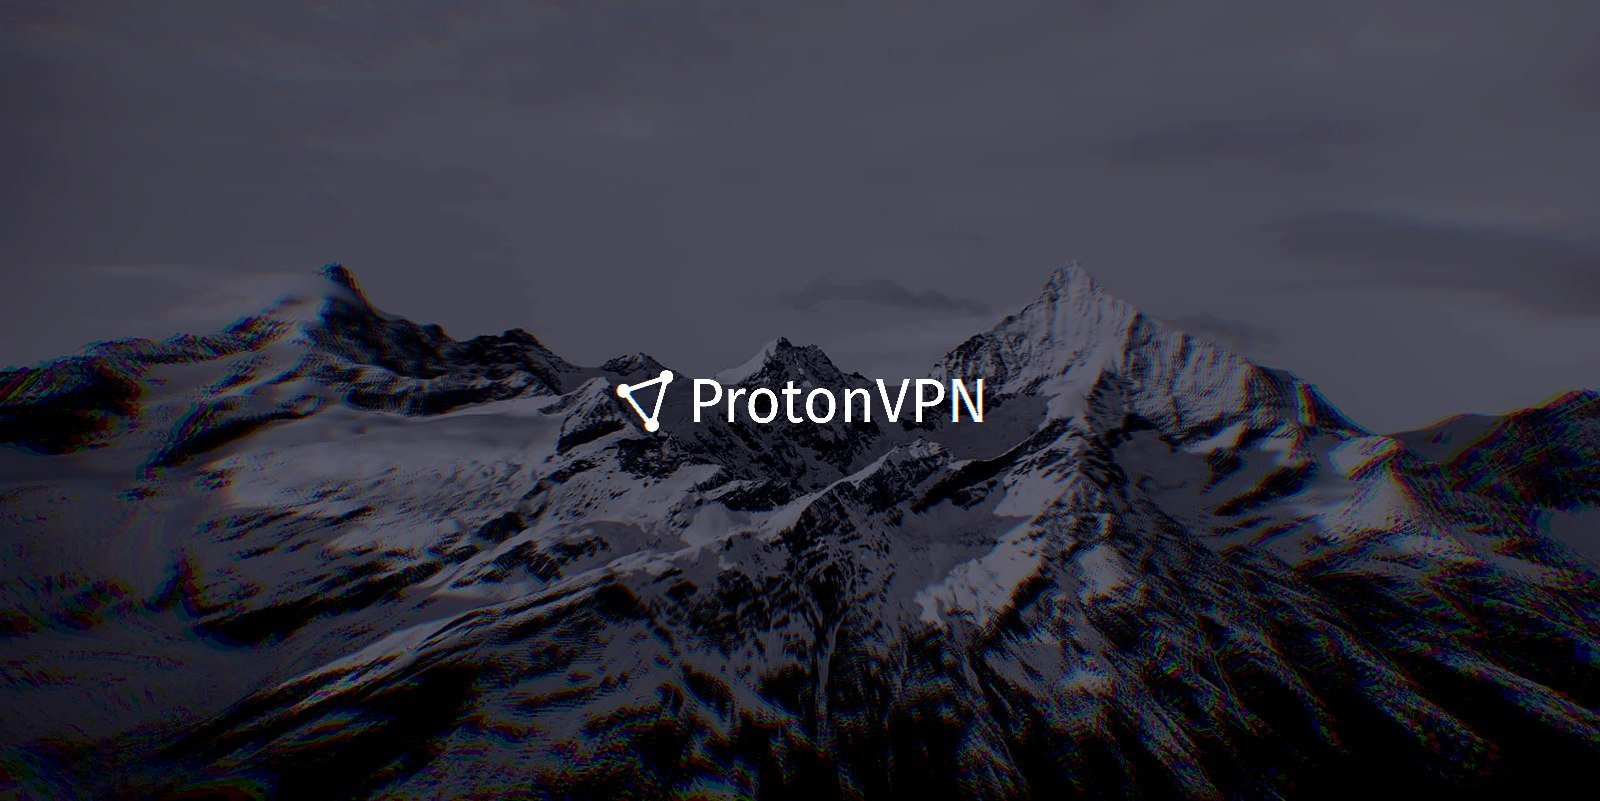 ProtonVPN Causes Windows BSOD Crashes Due To Antivirus Conflicts